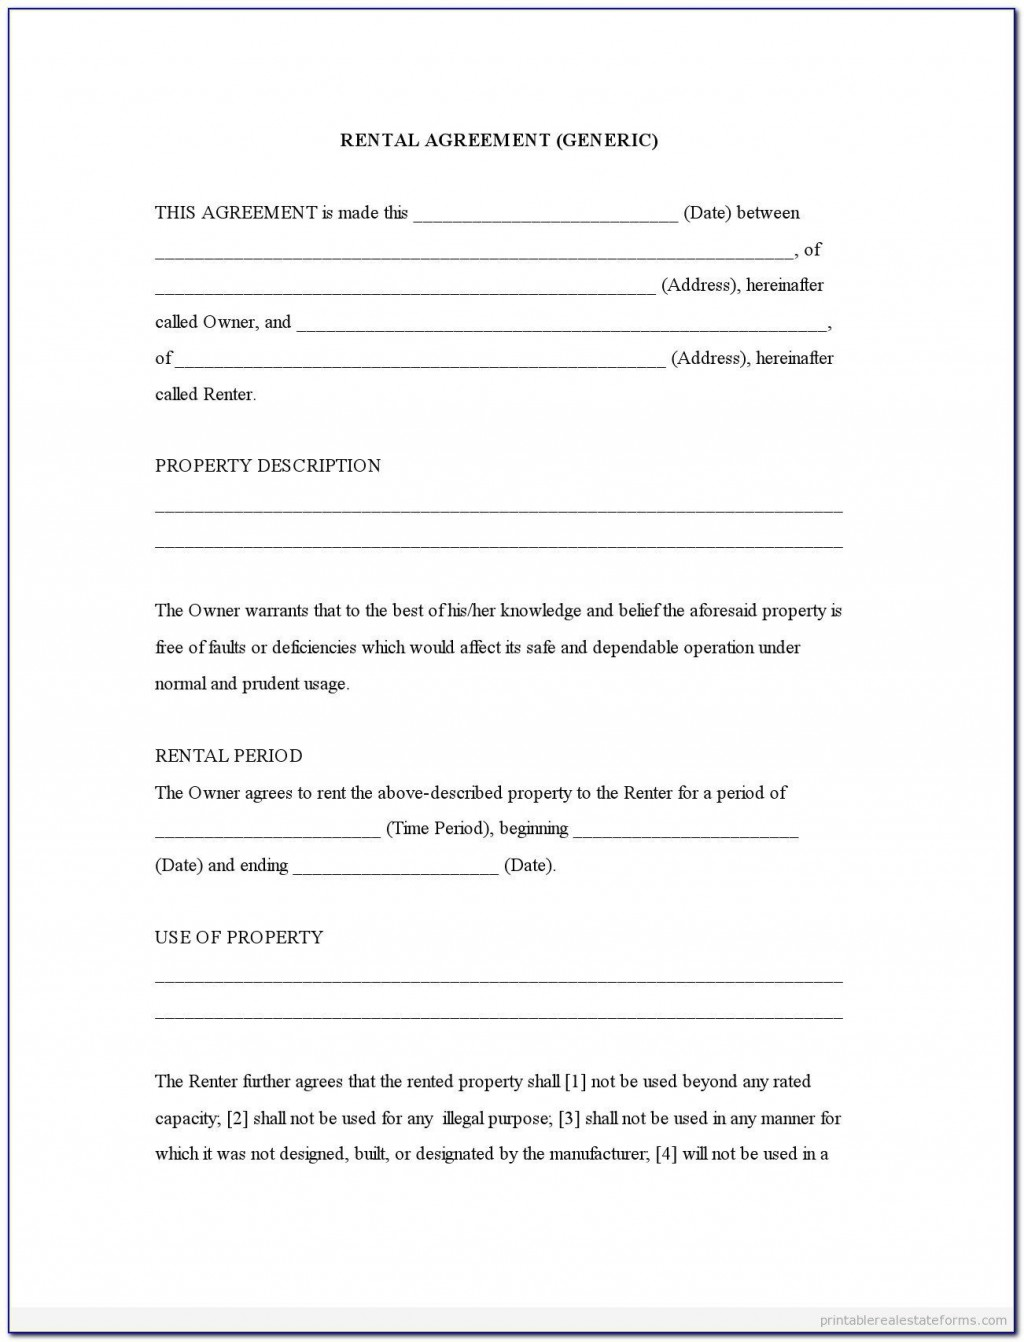 004 Exceptional Rental Agreement Template Word Free Picture  Tenancy ShortholdLarge